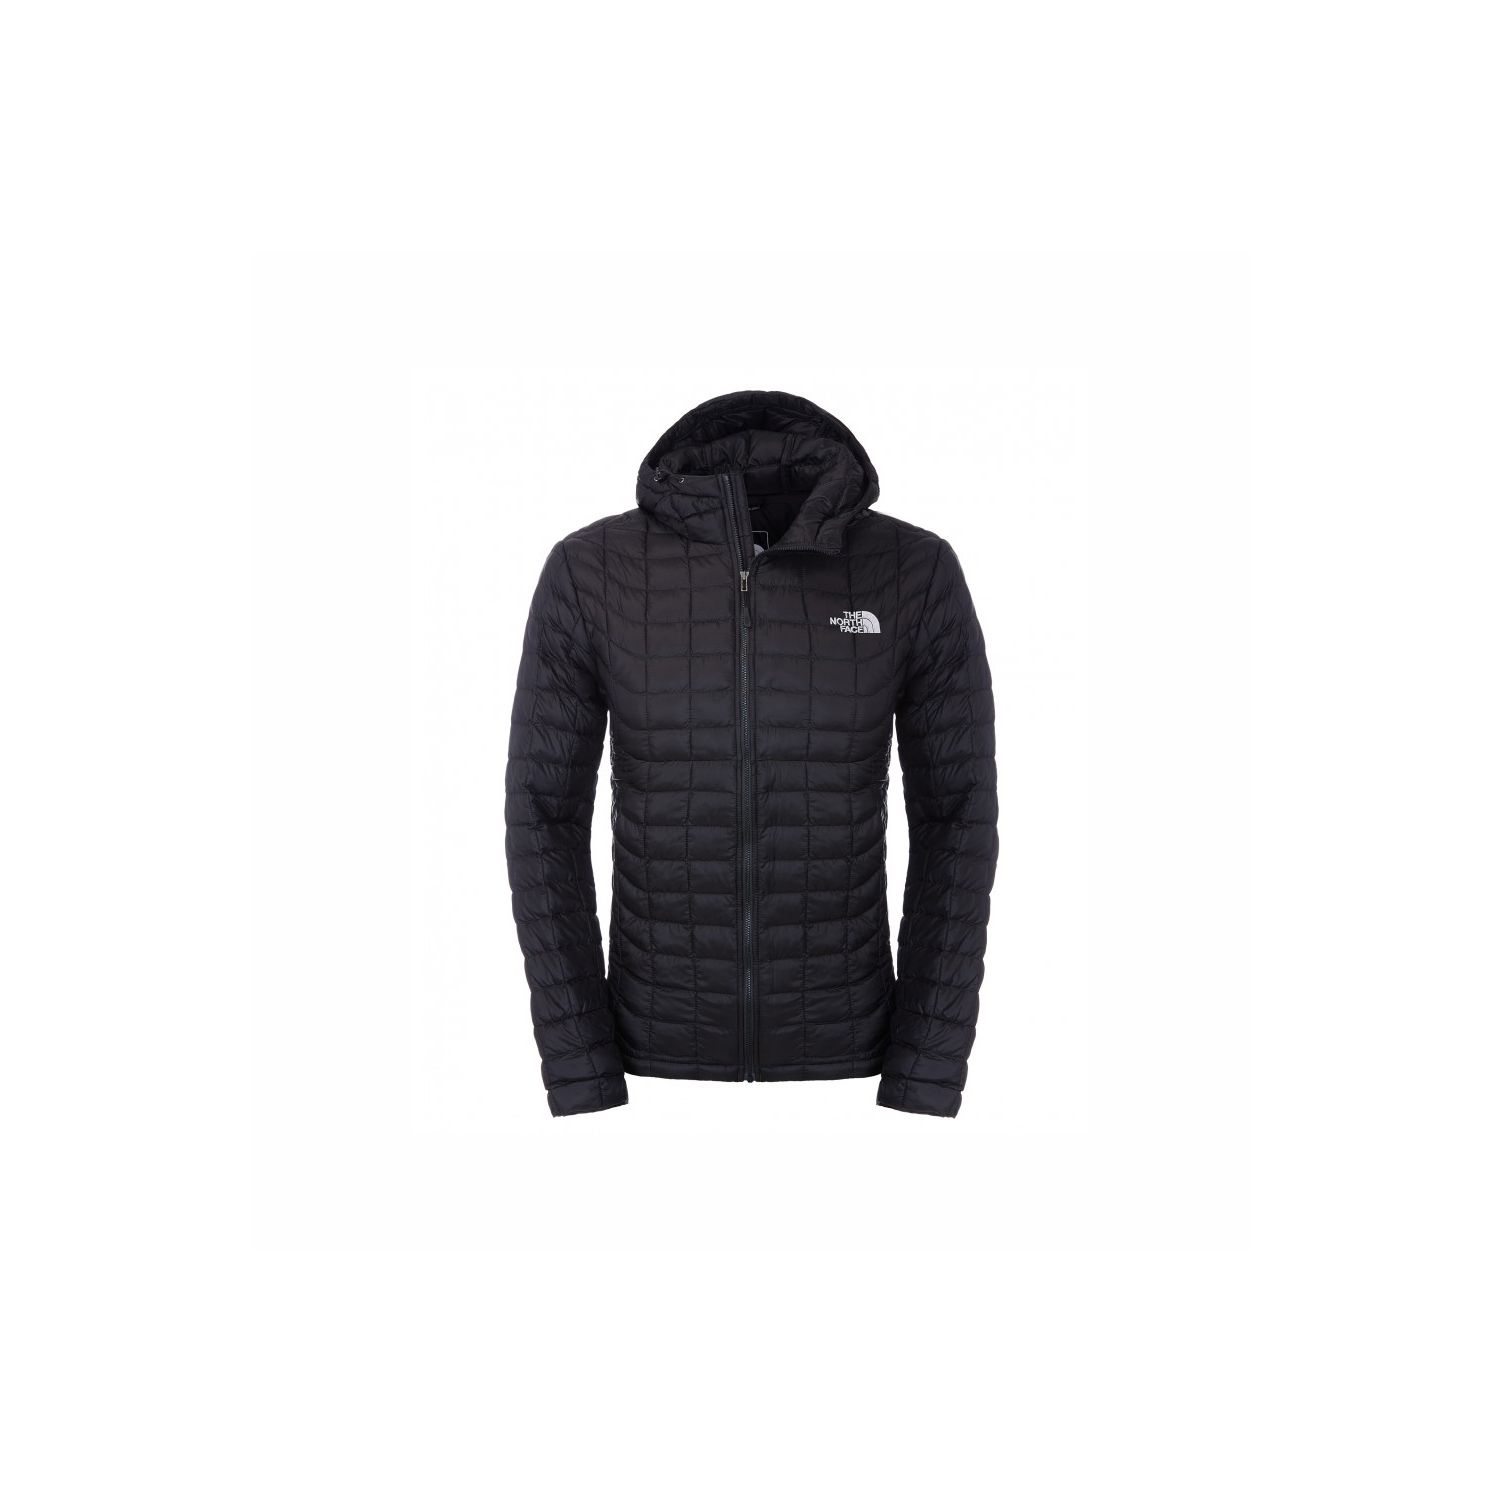 THE NORTH FACE- Doudoune Thermoball Hoodie M - Noir c1791fa71bfc